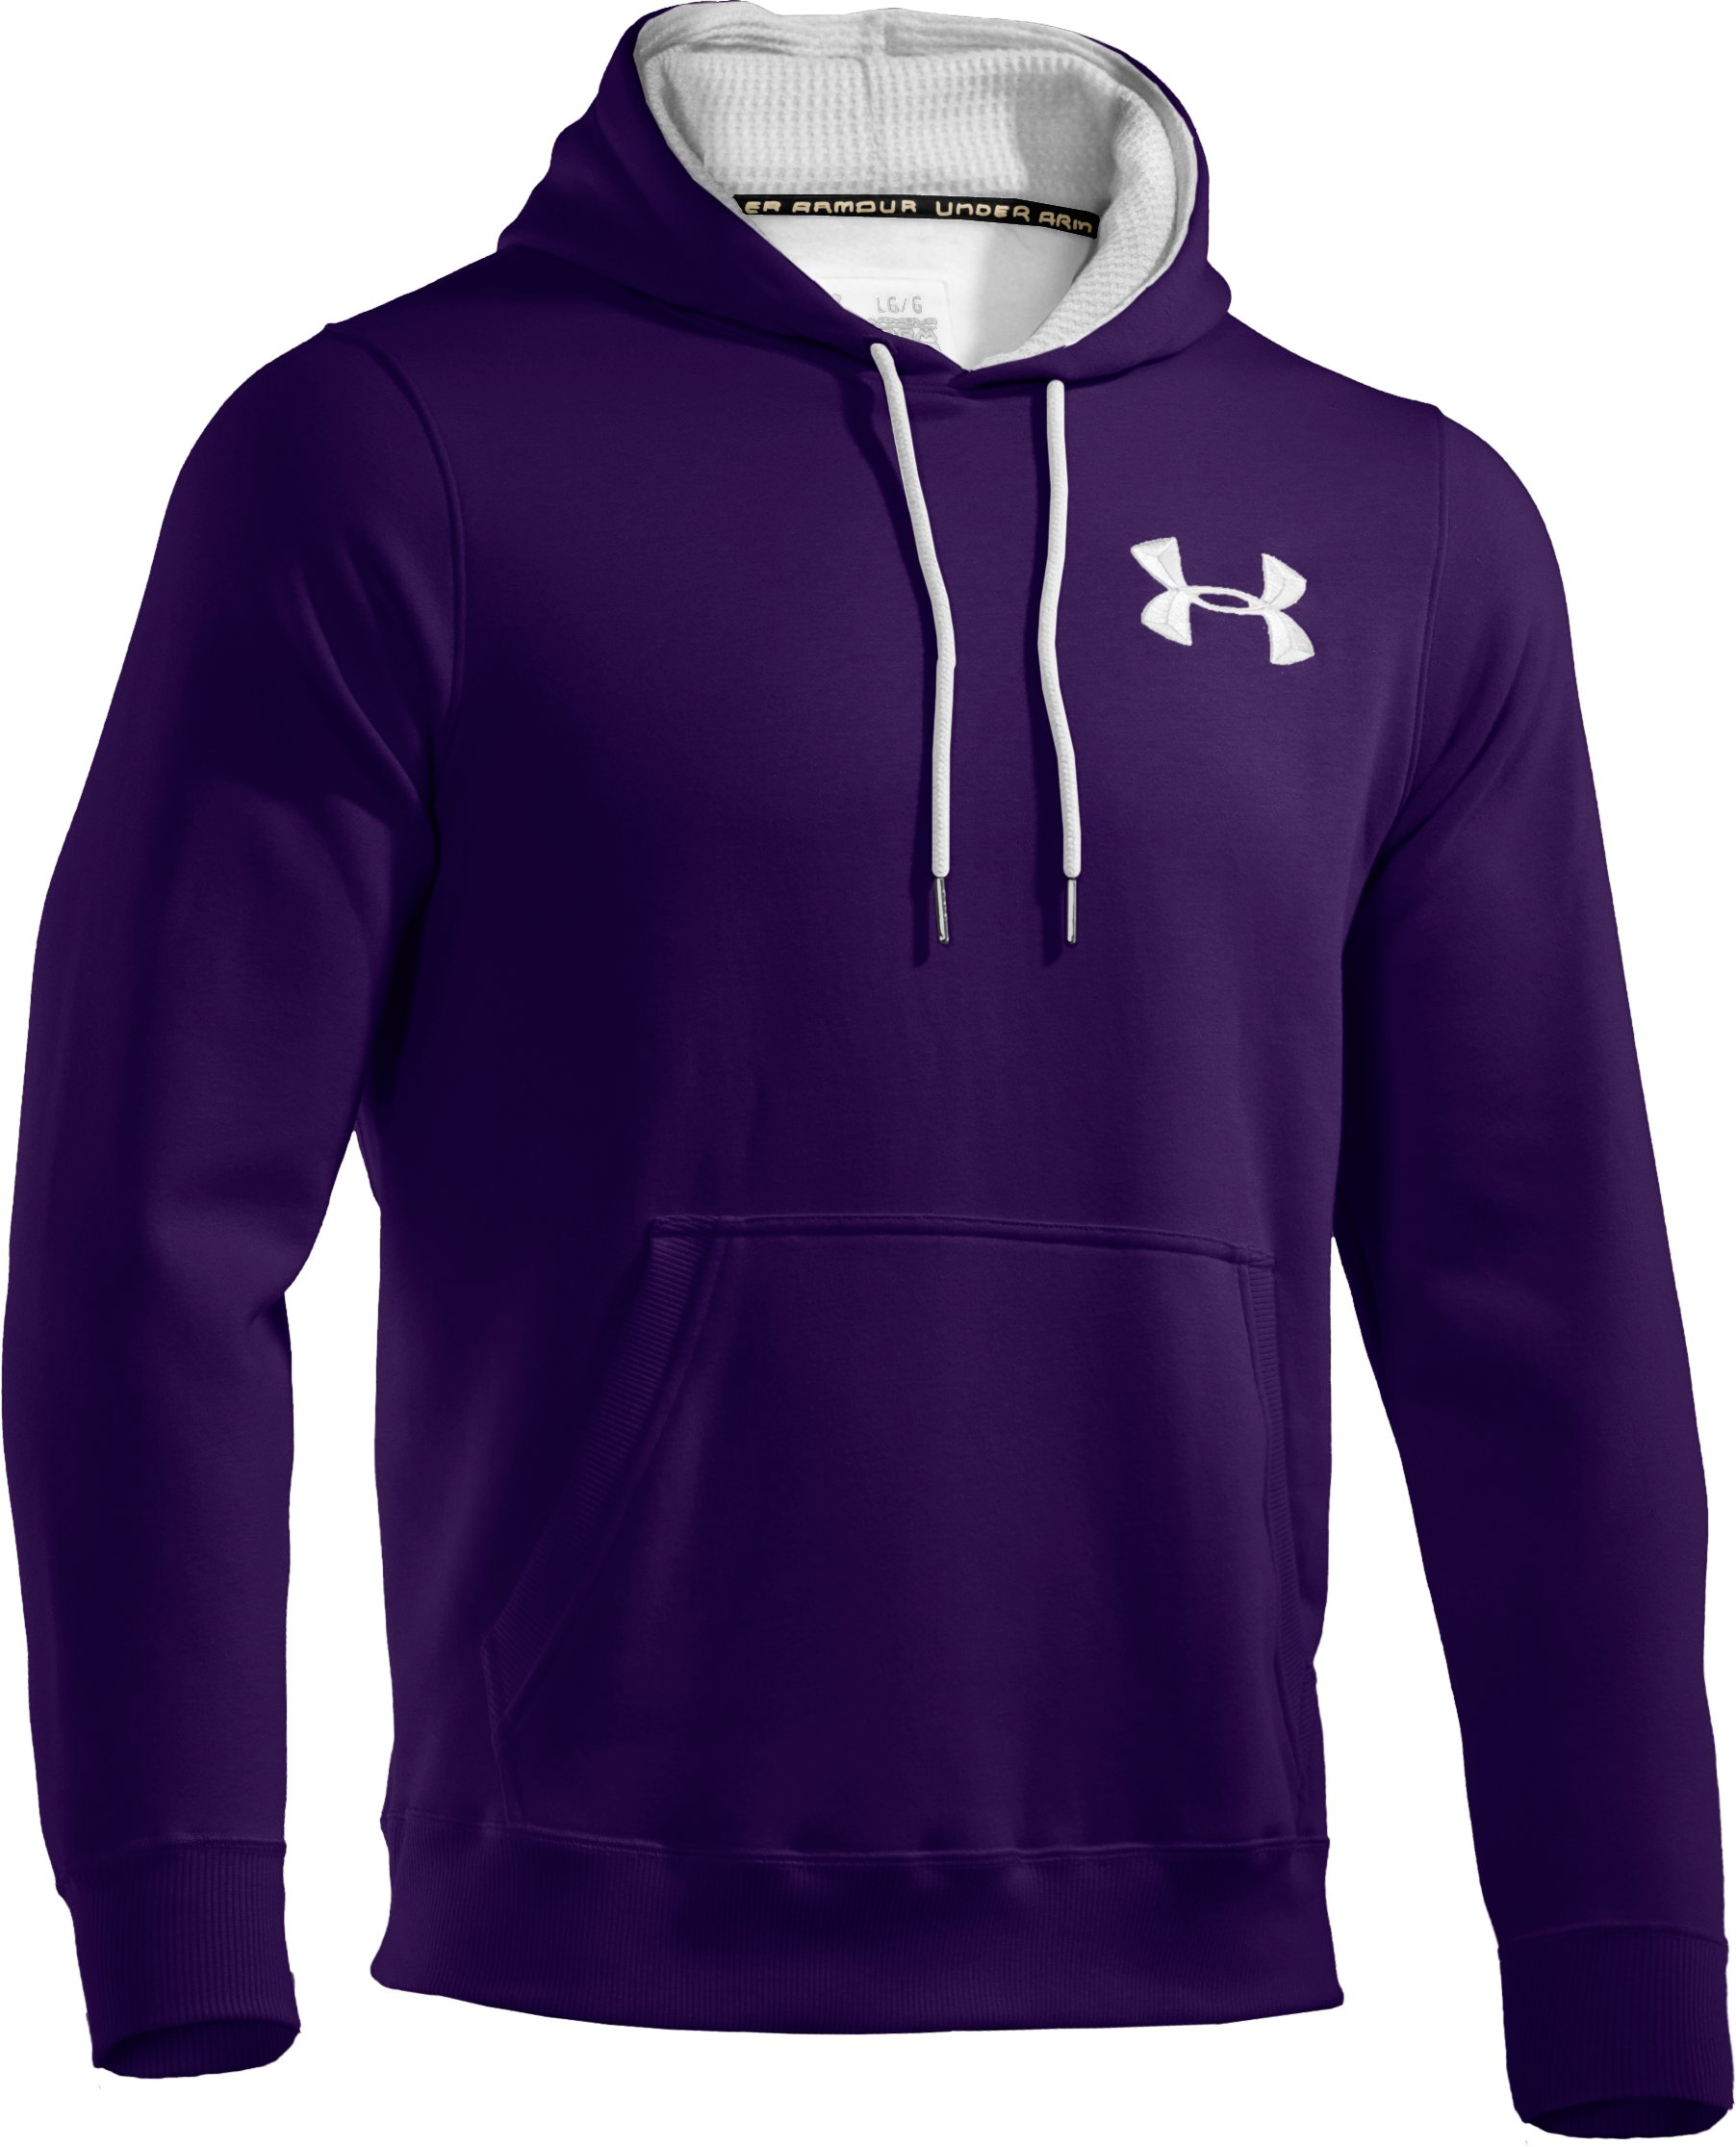 Men's Charged Cotton® Storm Pullover Hoodie, Zone, undefined